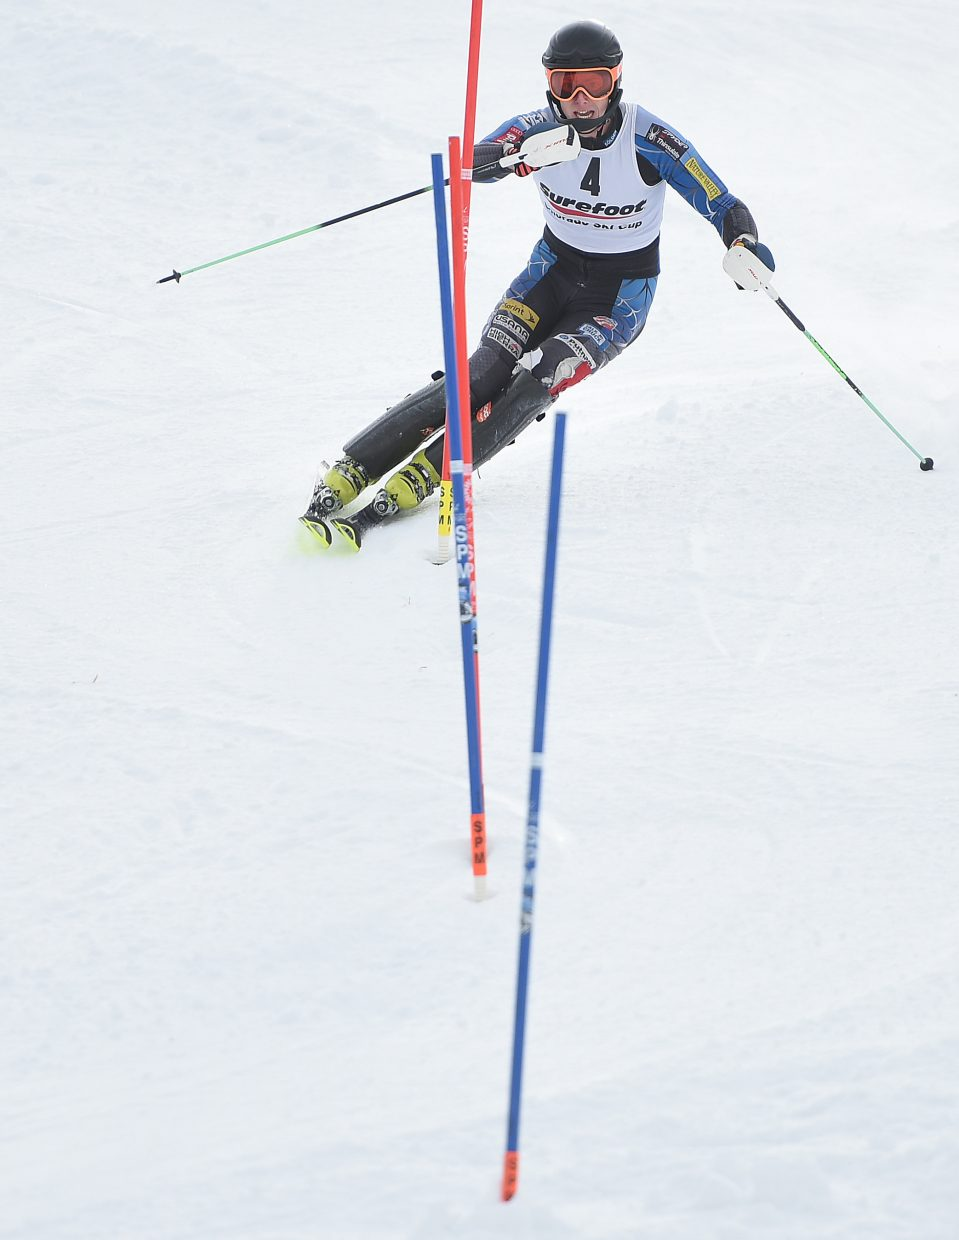 Nick Santaniello, who trained in Steamboat Springs before starting at University of Denver, charges down the slalom course at Howelsen Hill on Wednesday. He placed in a tie for third in the men's field.